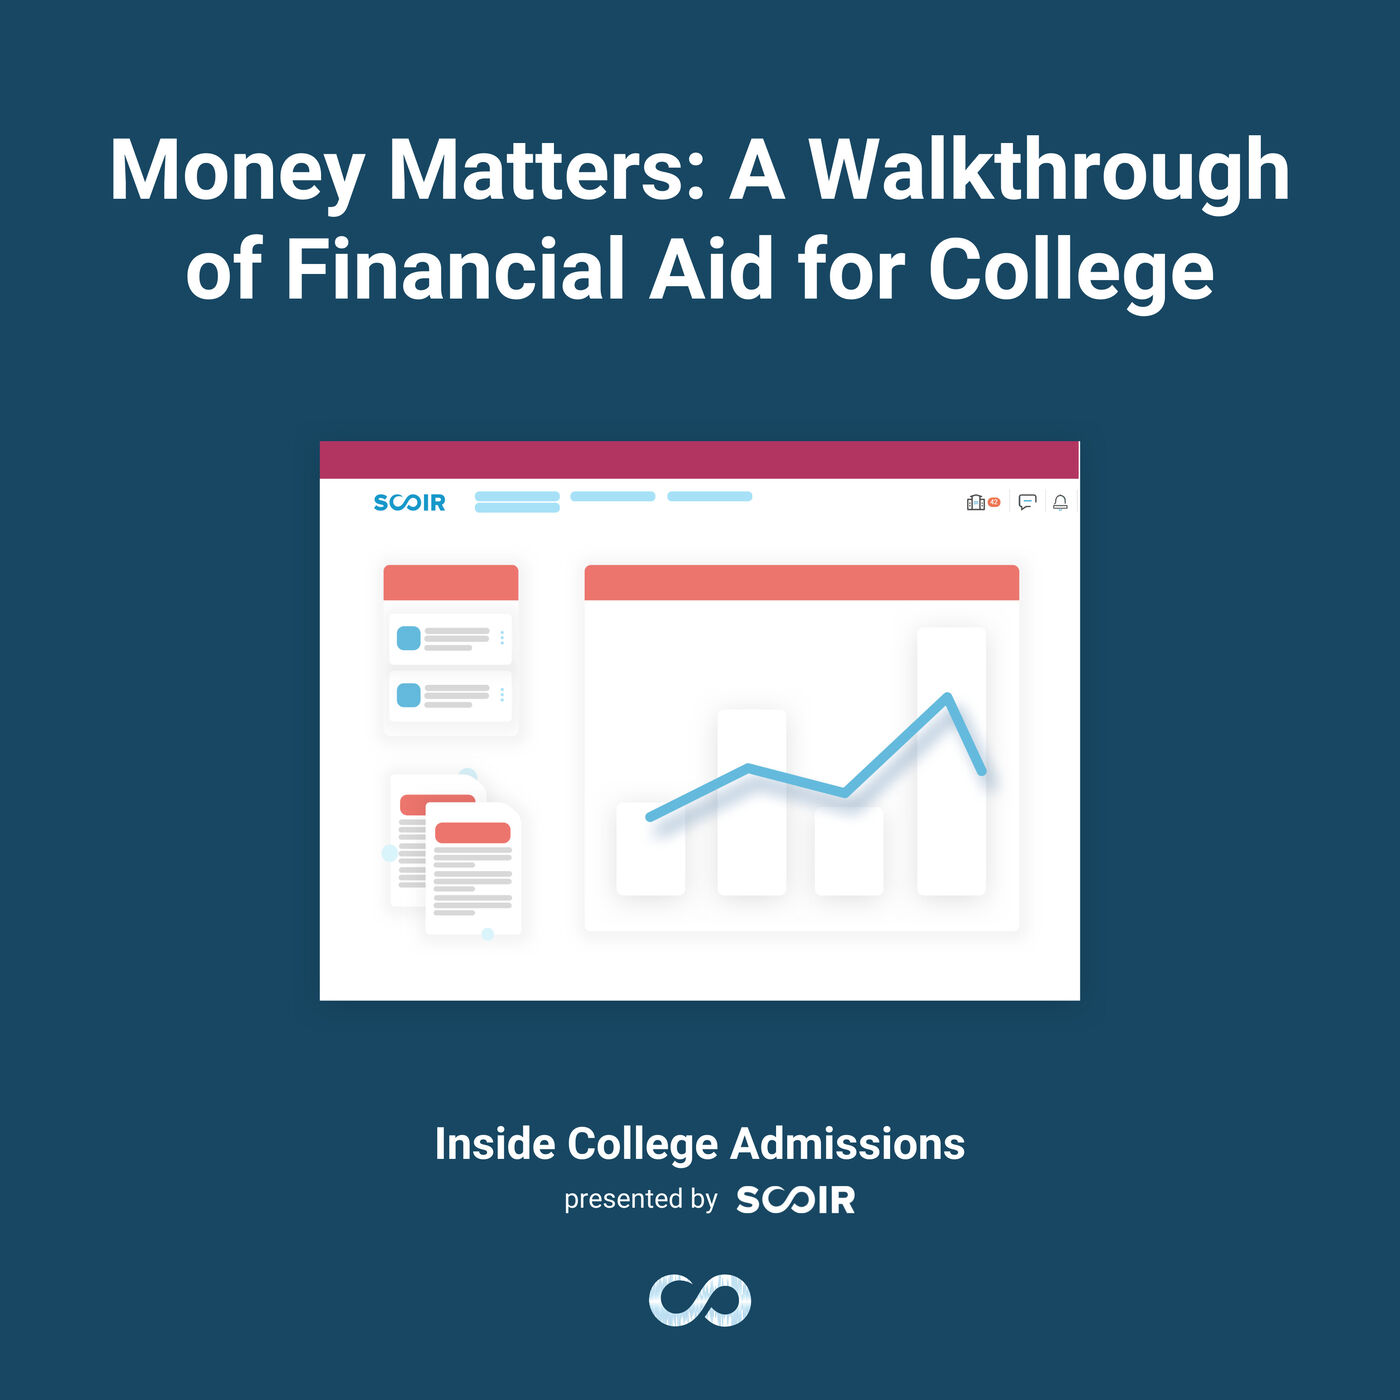 Money Matters: A Walkthrough of Financial Aid for College